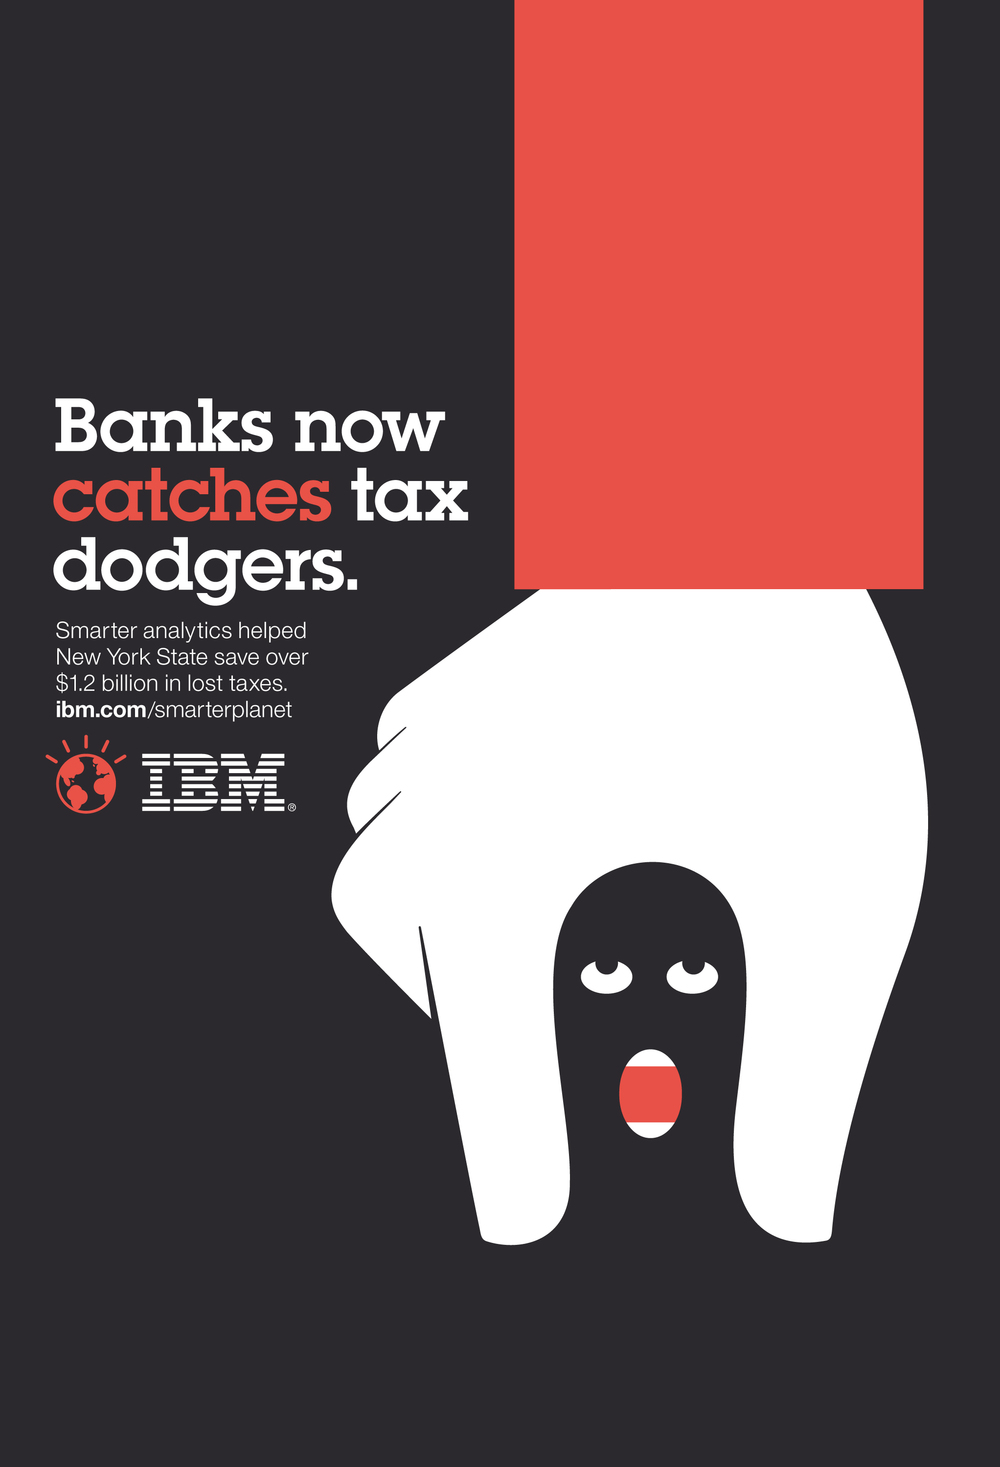 402x590_GraphicDesign_D&AD_IBM_ST.indd